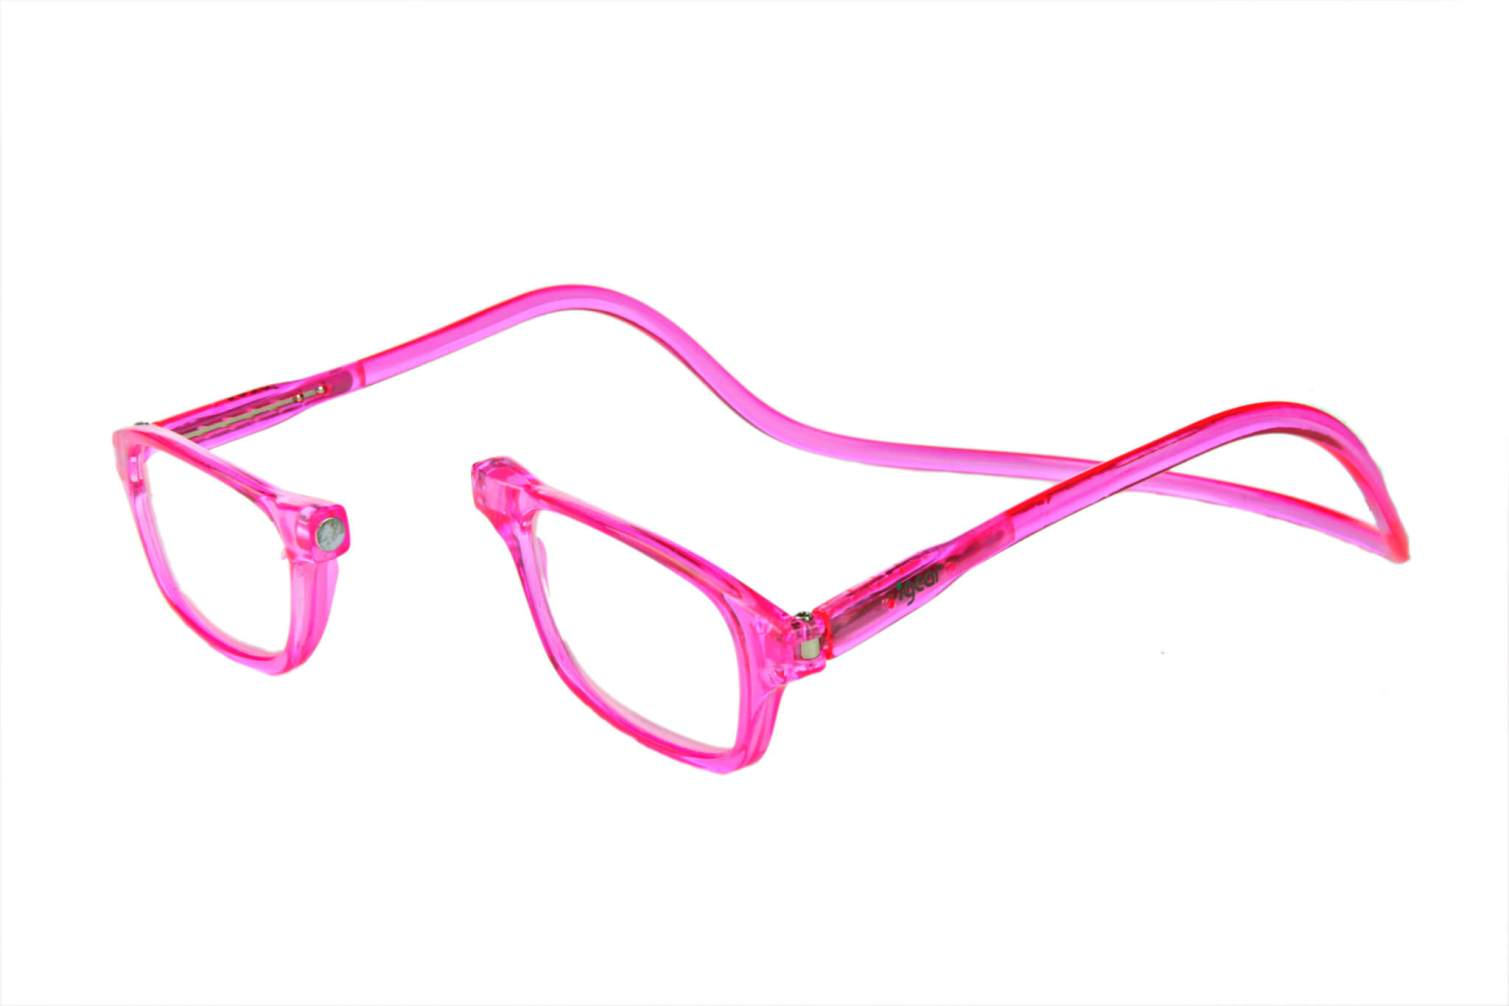 Magnetic Eyeglasses Pink available at www.igearindia.com